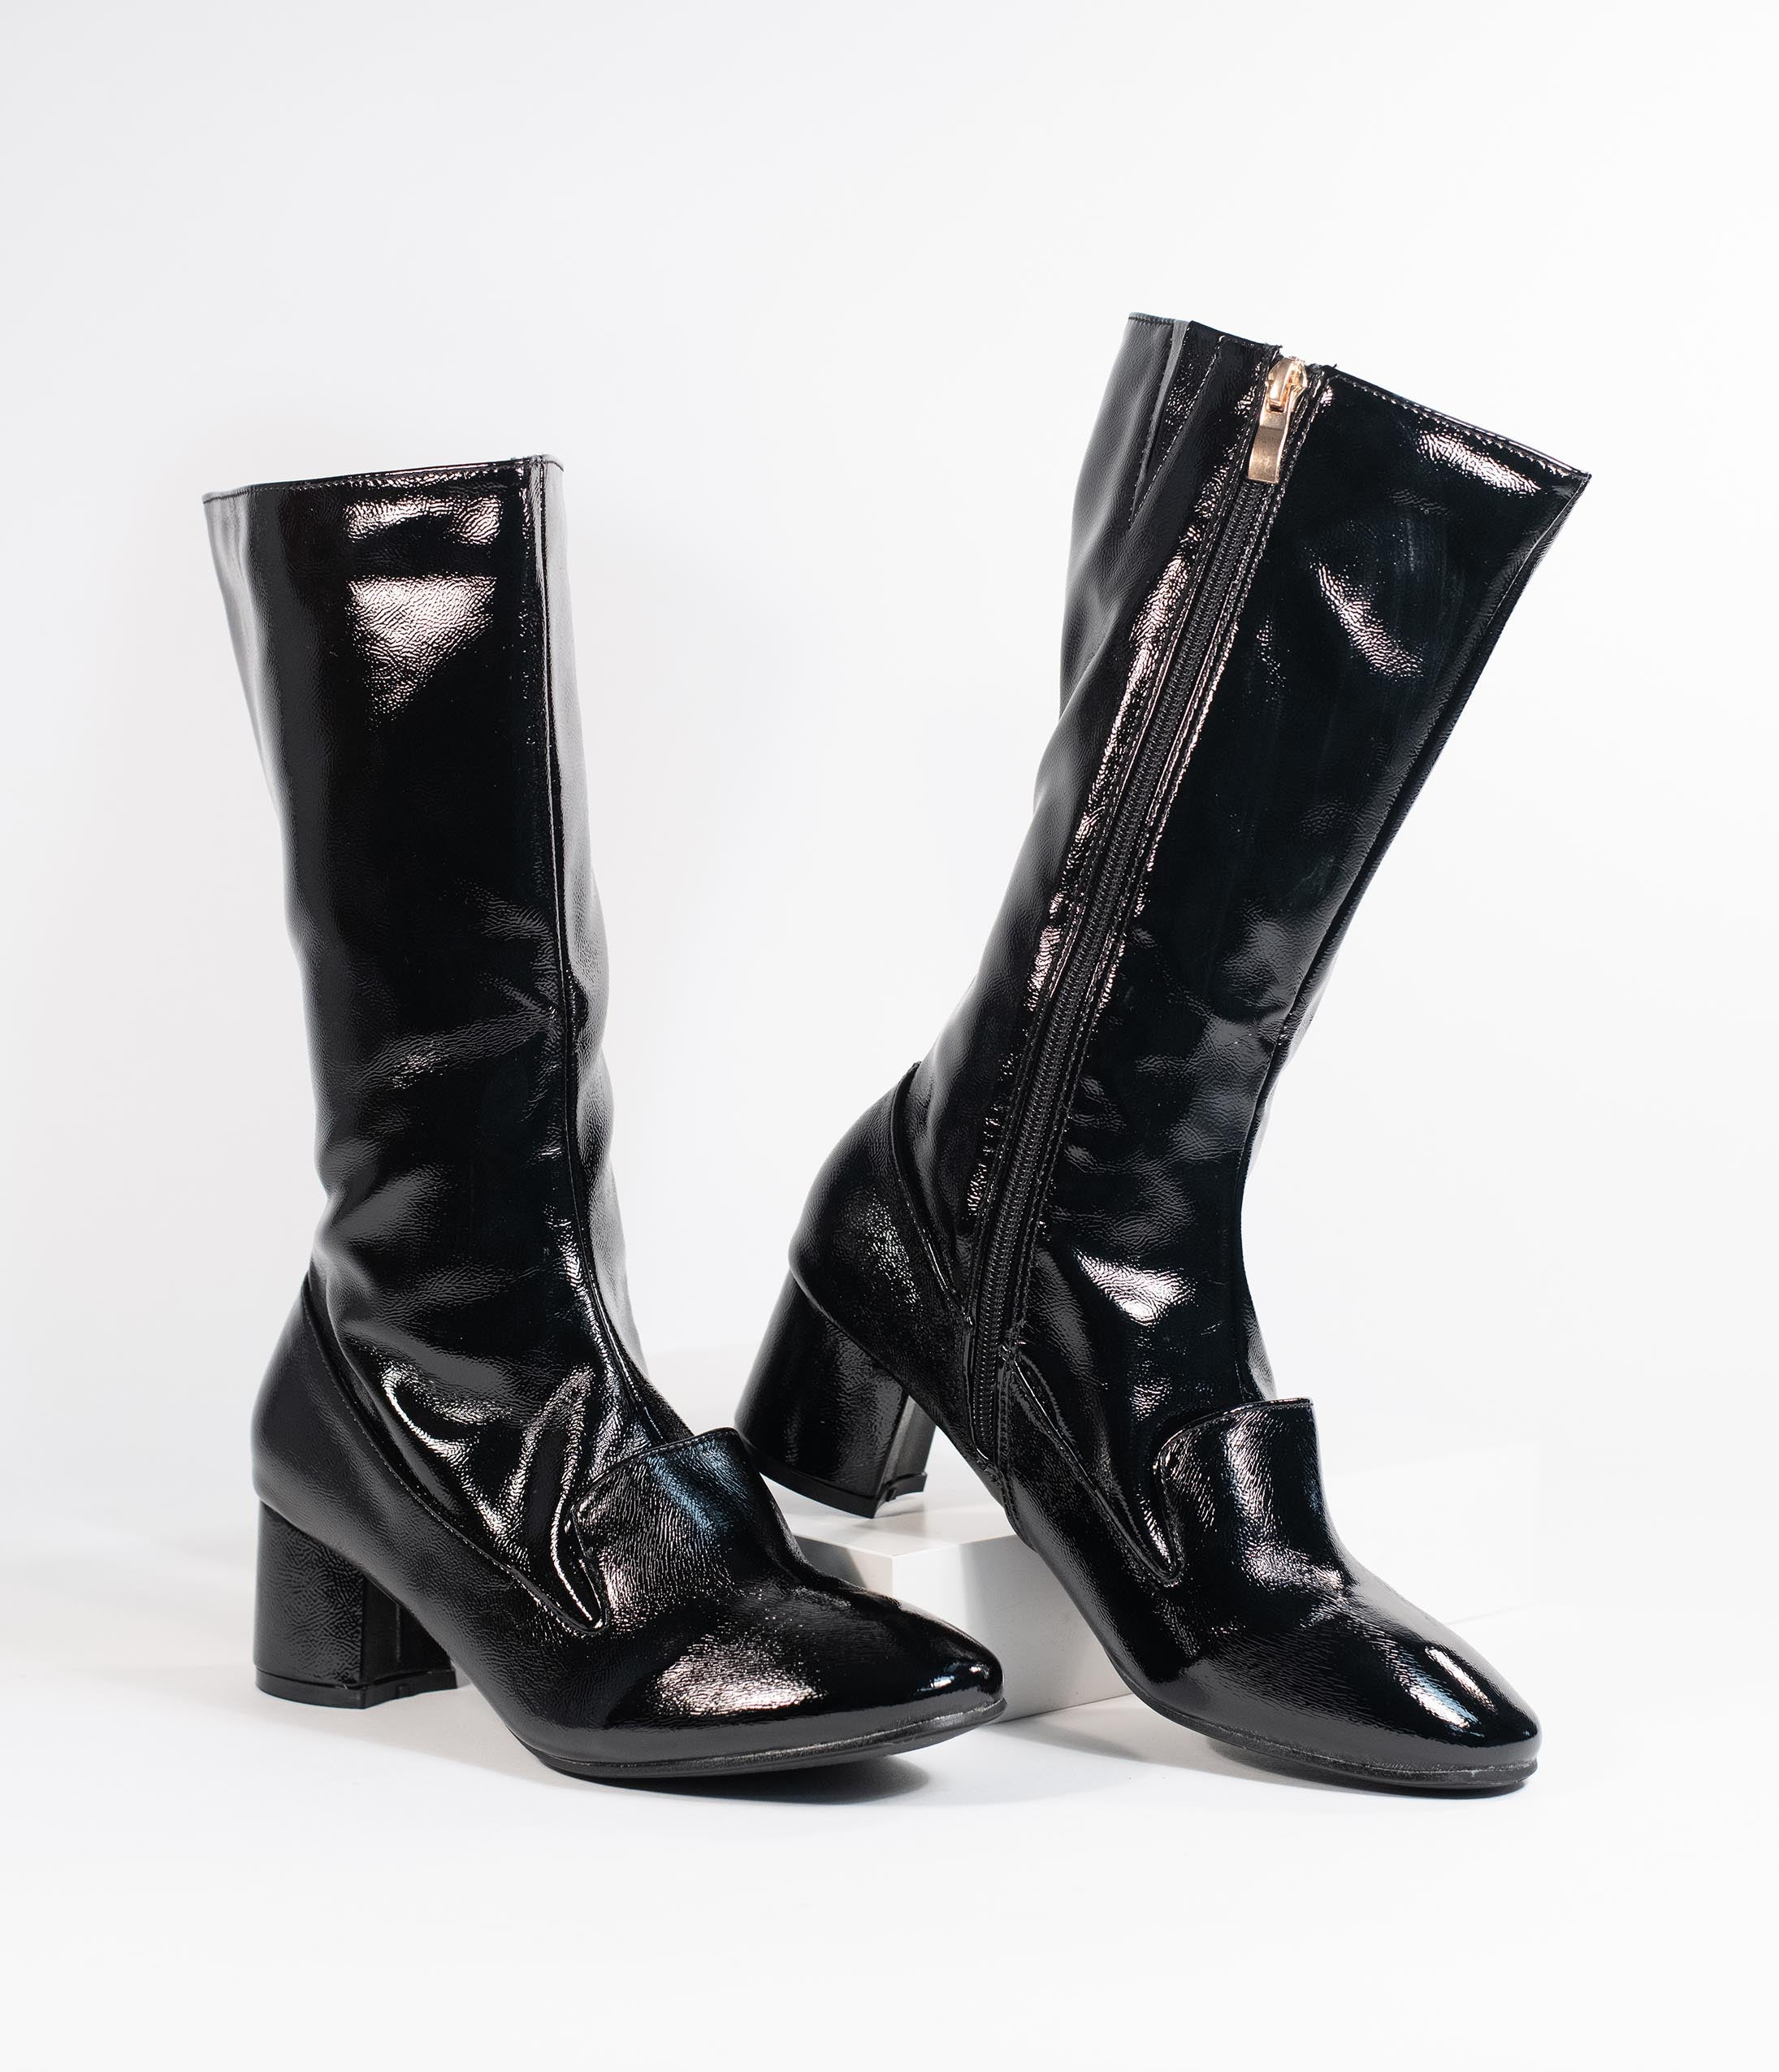 Vintage Boots- Buy Winter Retro Boots 1960S Style Black Patent Leatherette Block Heel Modernist Boots $78.00 AT vintagedancer.com